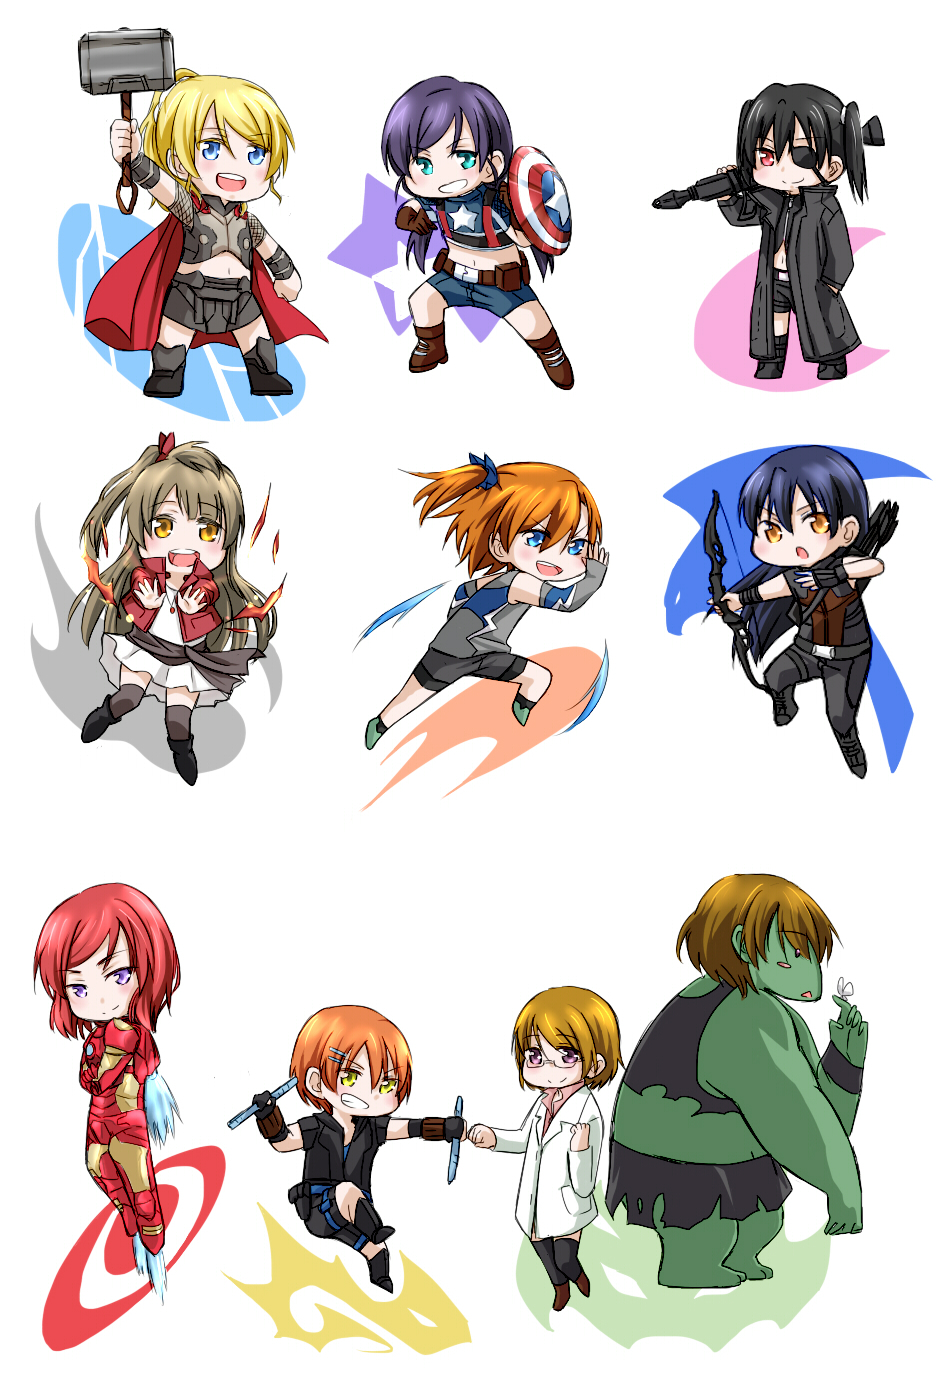 The Avengers Parody Zerochan Anime Image Board Marvel and fate/stay night crossovers. the avengers parody zerochan anime